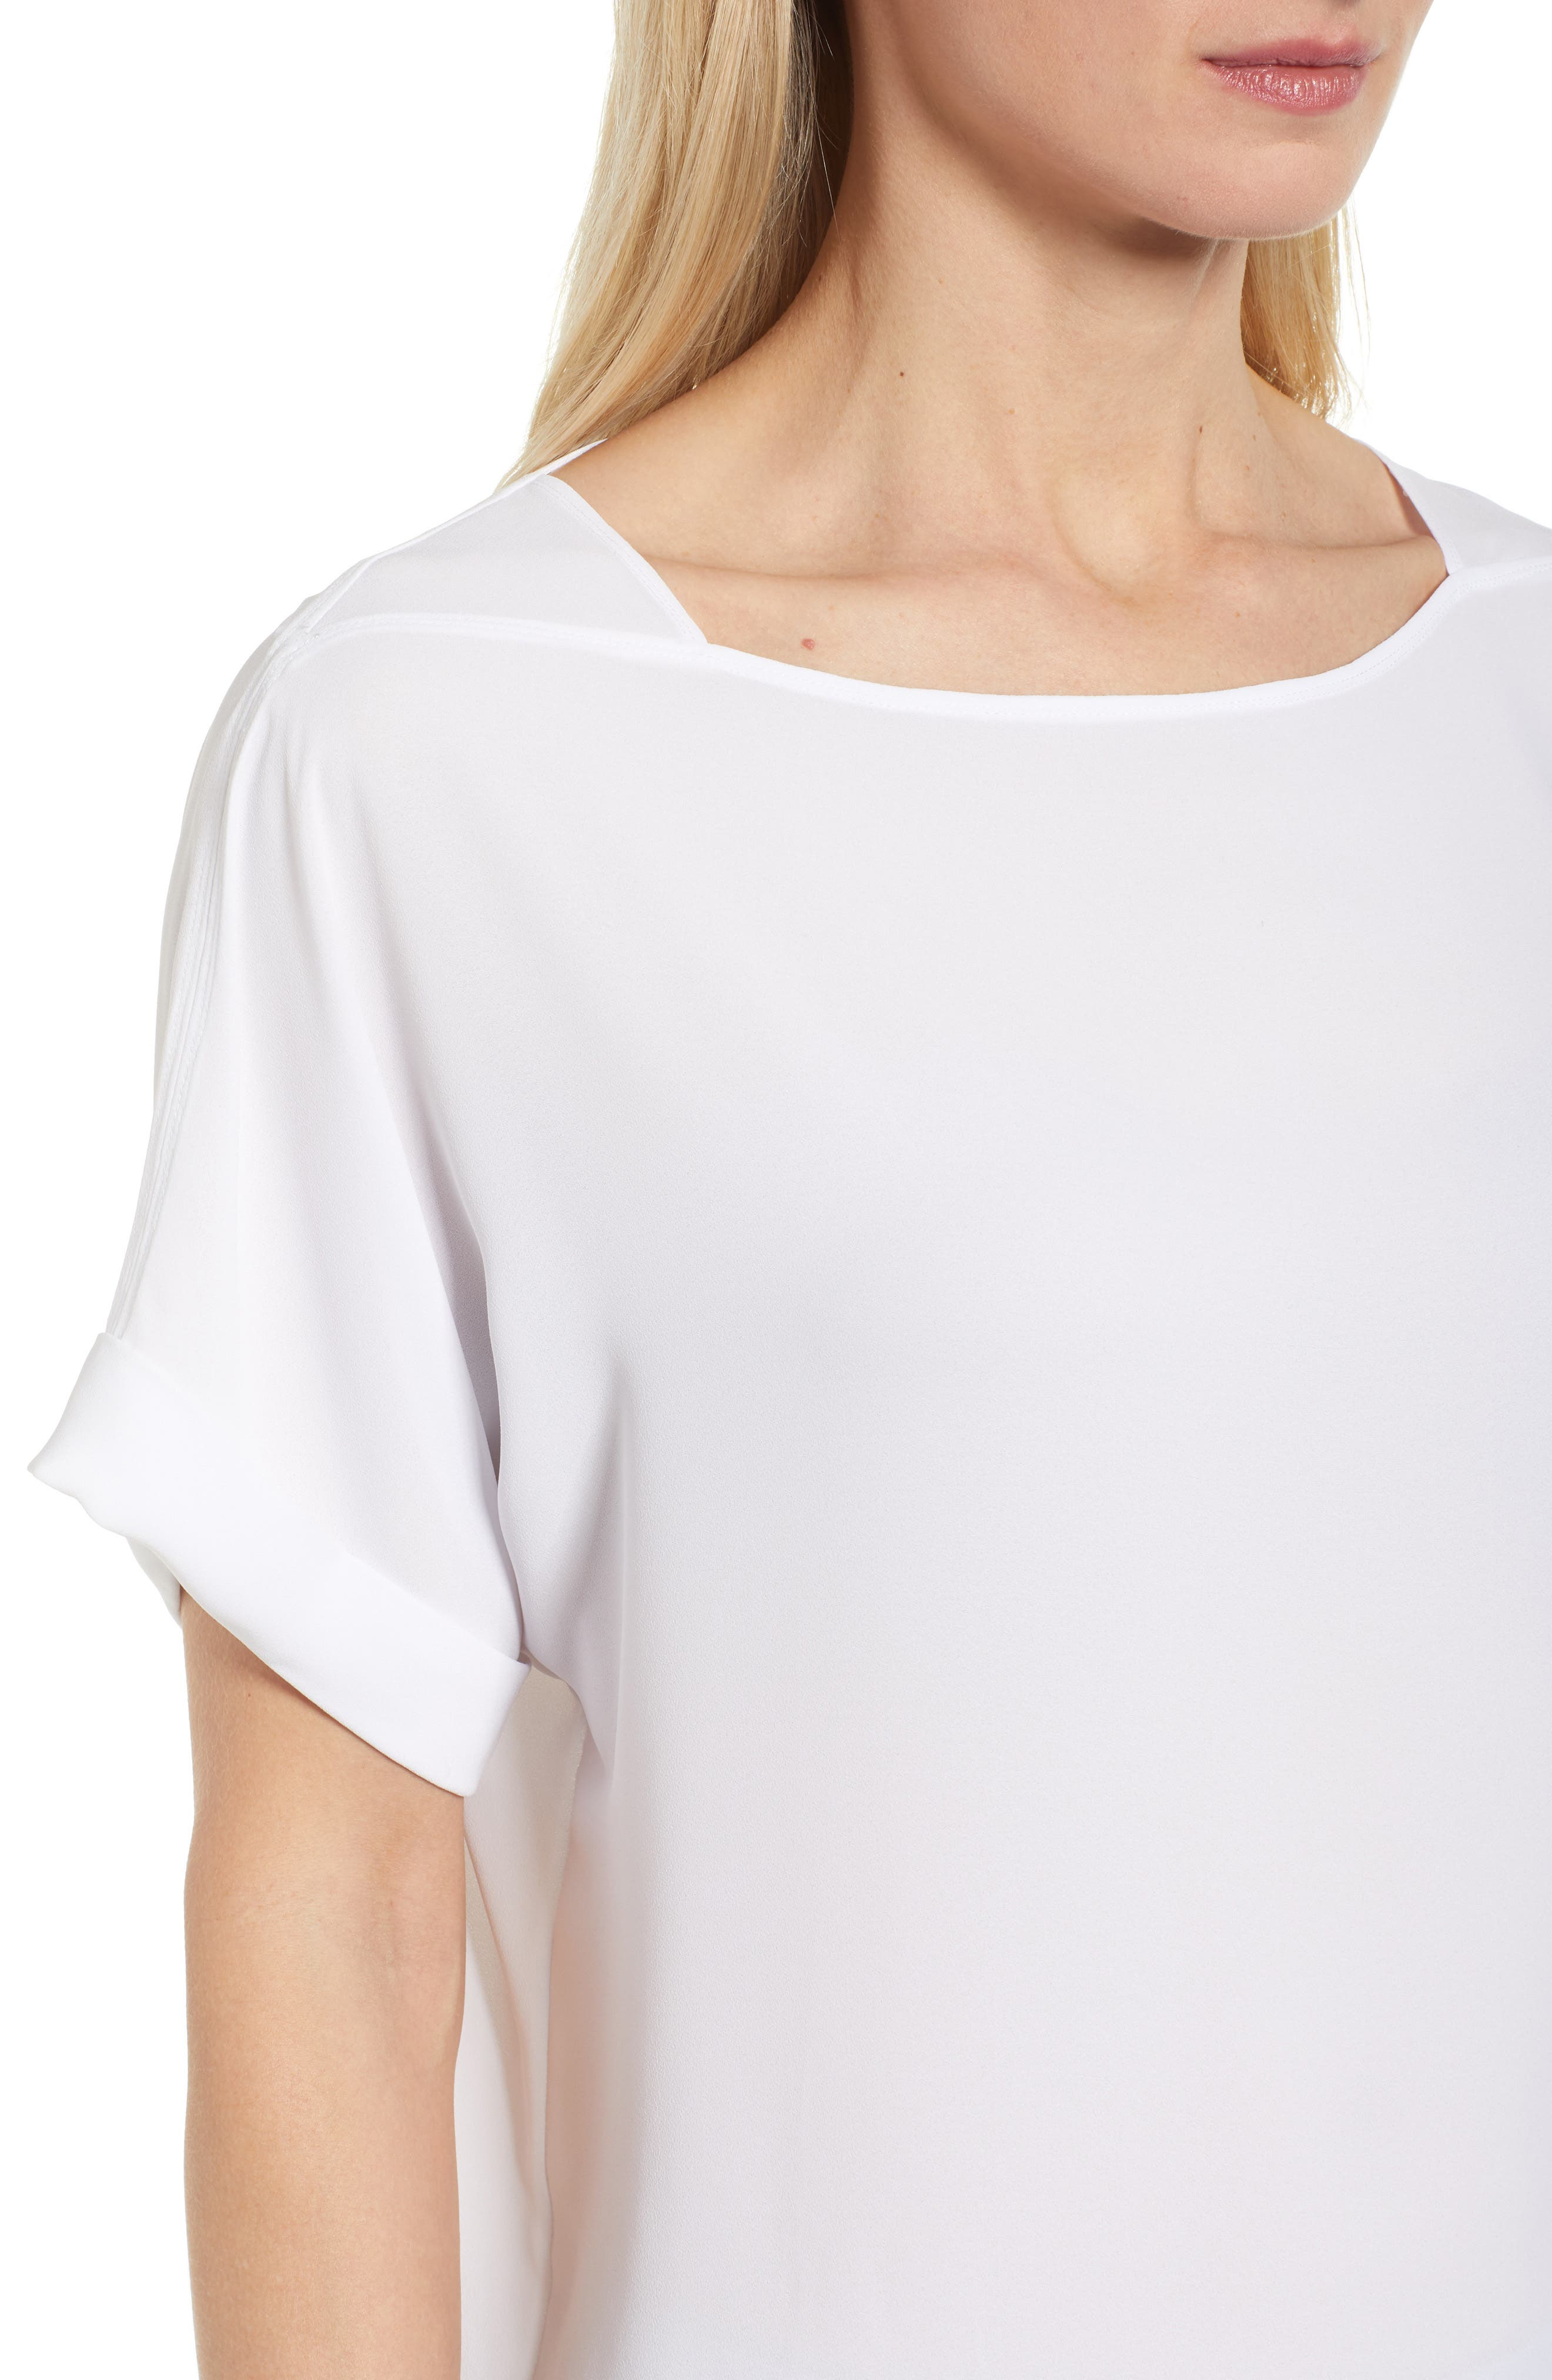 NIC + ZOE Moroccan Tee,                             Alternate thumbnail 4, color,                             Paper White